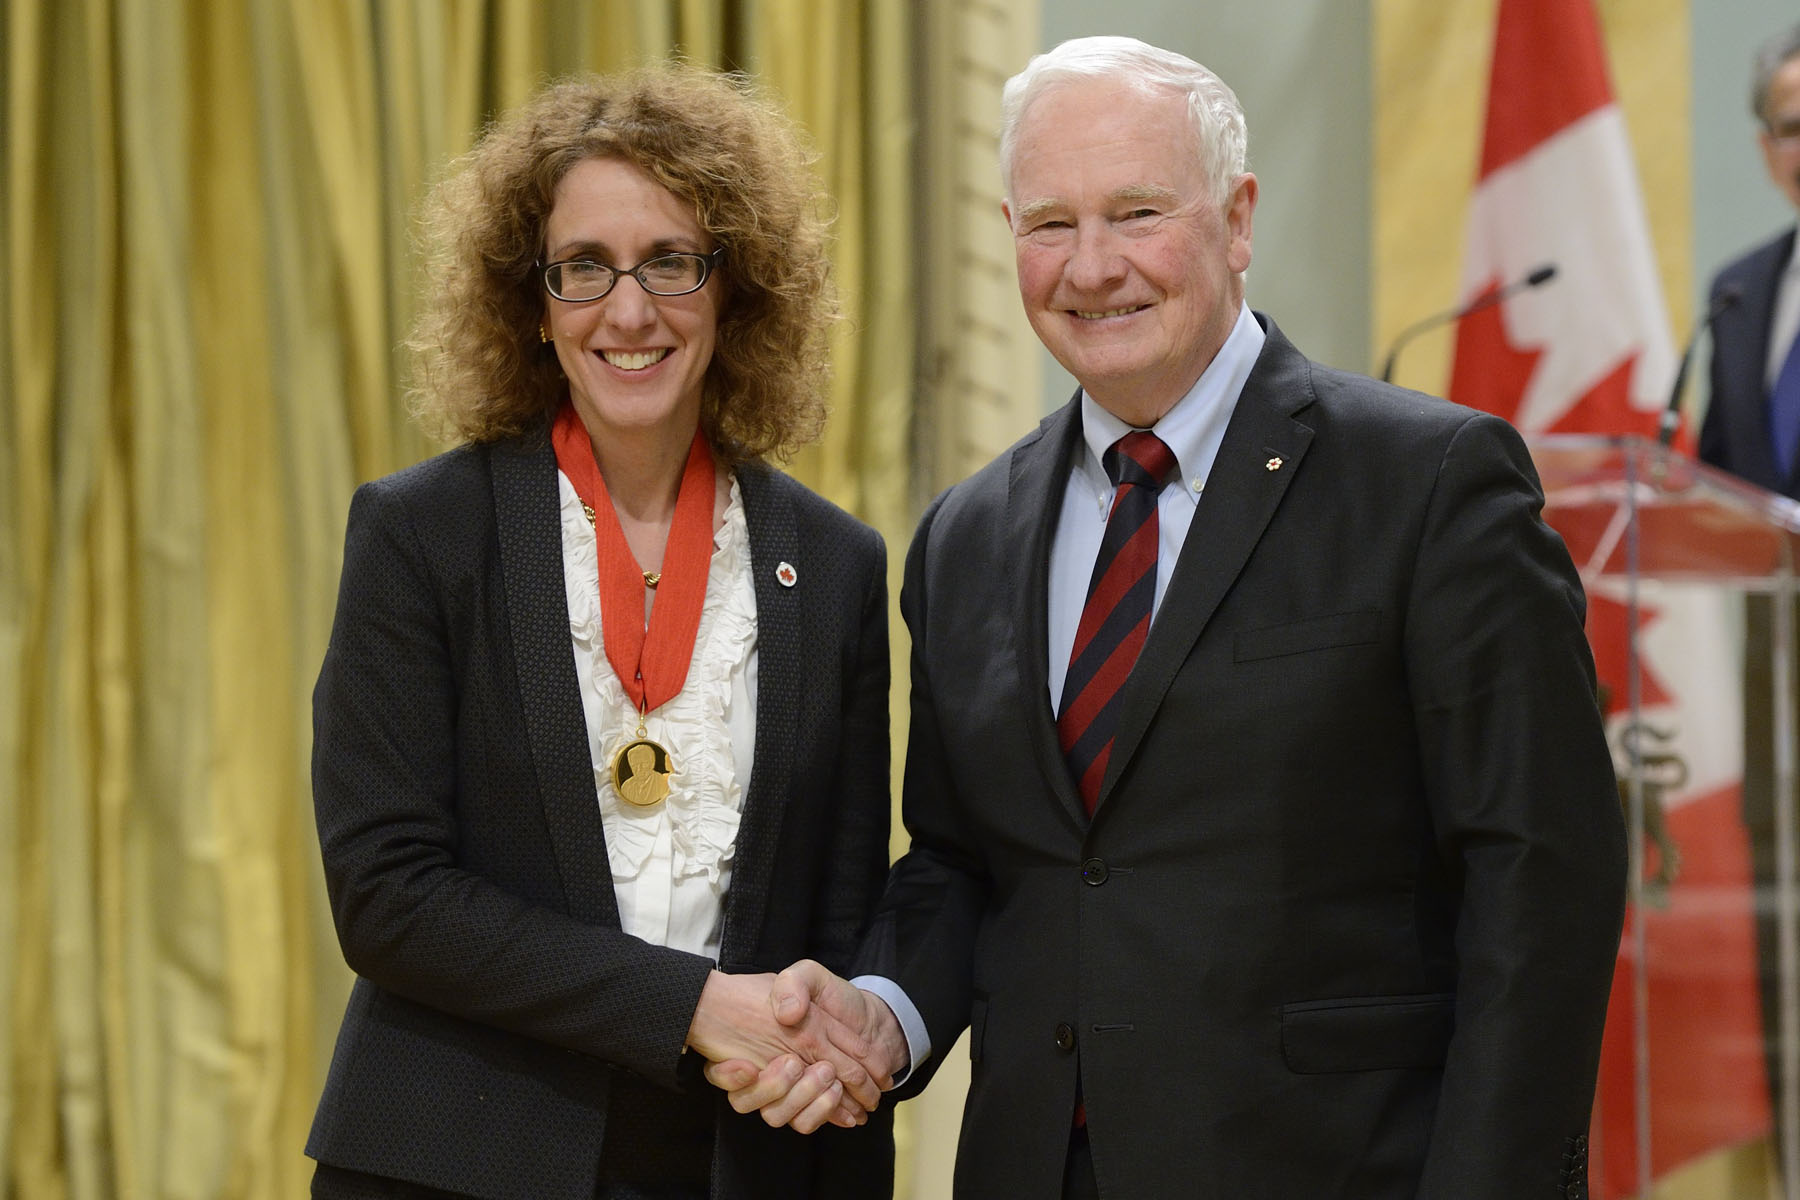 Ms. Victoria M. Kaspi¸(McGill University) received the Gerhard Herzberg Canada Gold Medal for Science and Engineering.